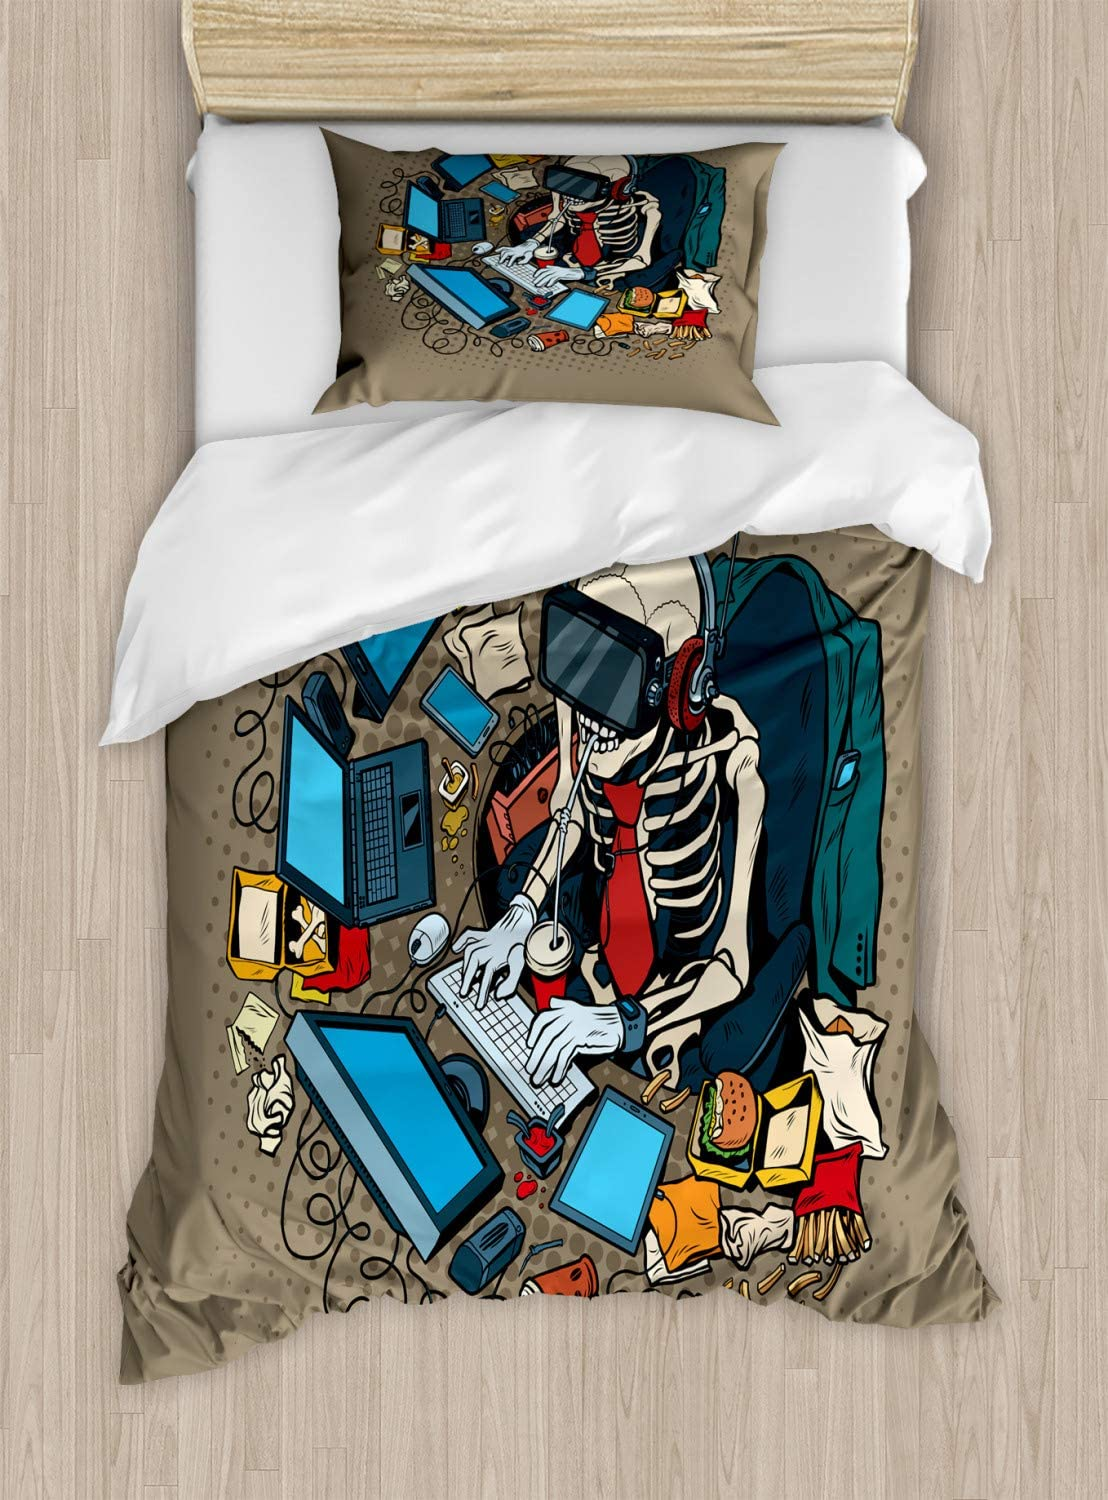 Ambesonne Gamer Duvet Cover Set, Skeleton Programmer and Hacker in Virtual Reality Eating Fast Food Theme Illustration, Decorative 2 Piece Bedding Set with 1 Pillow Sham, Twin Size, Khaki Blue